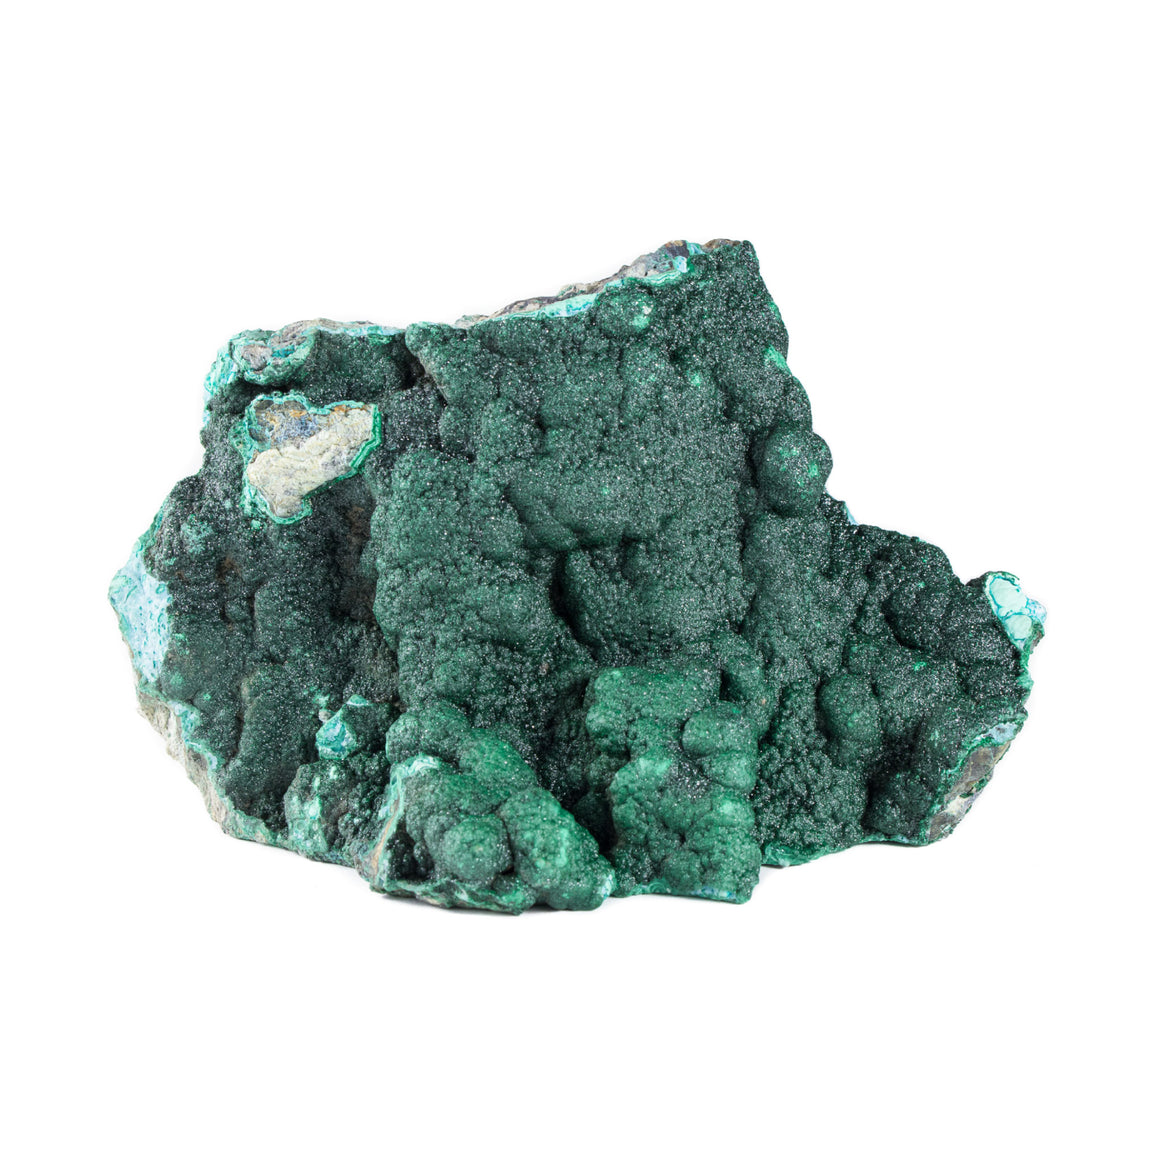 Malachite Specimen Large Crystalline from Congo